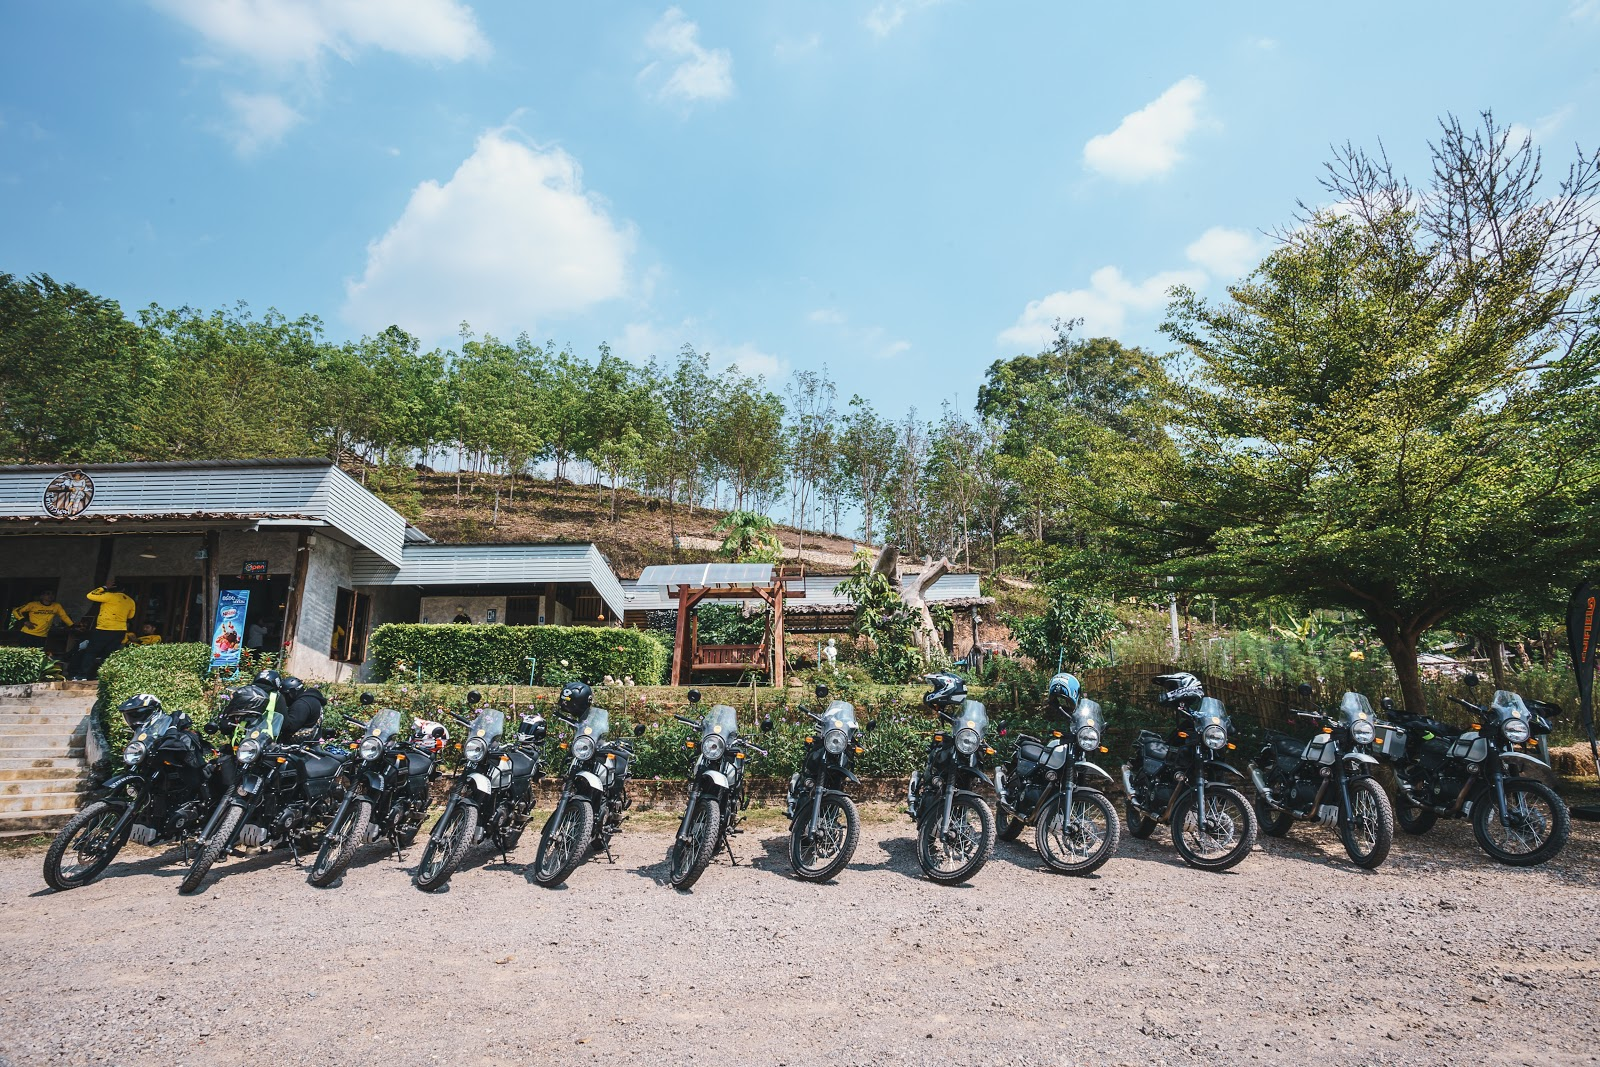 Bikes lined up: To rent or buy a motorbike